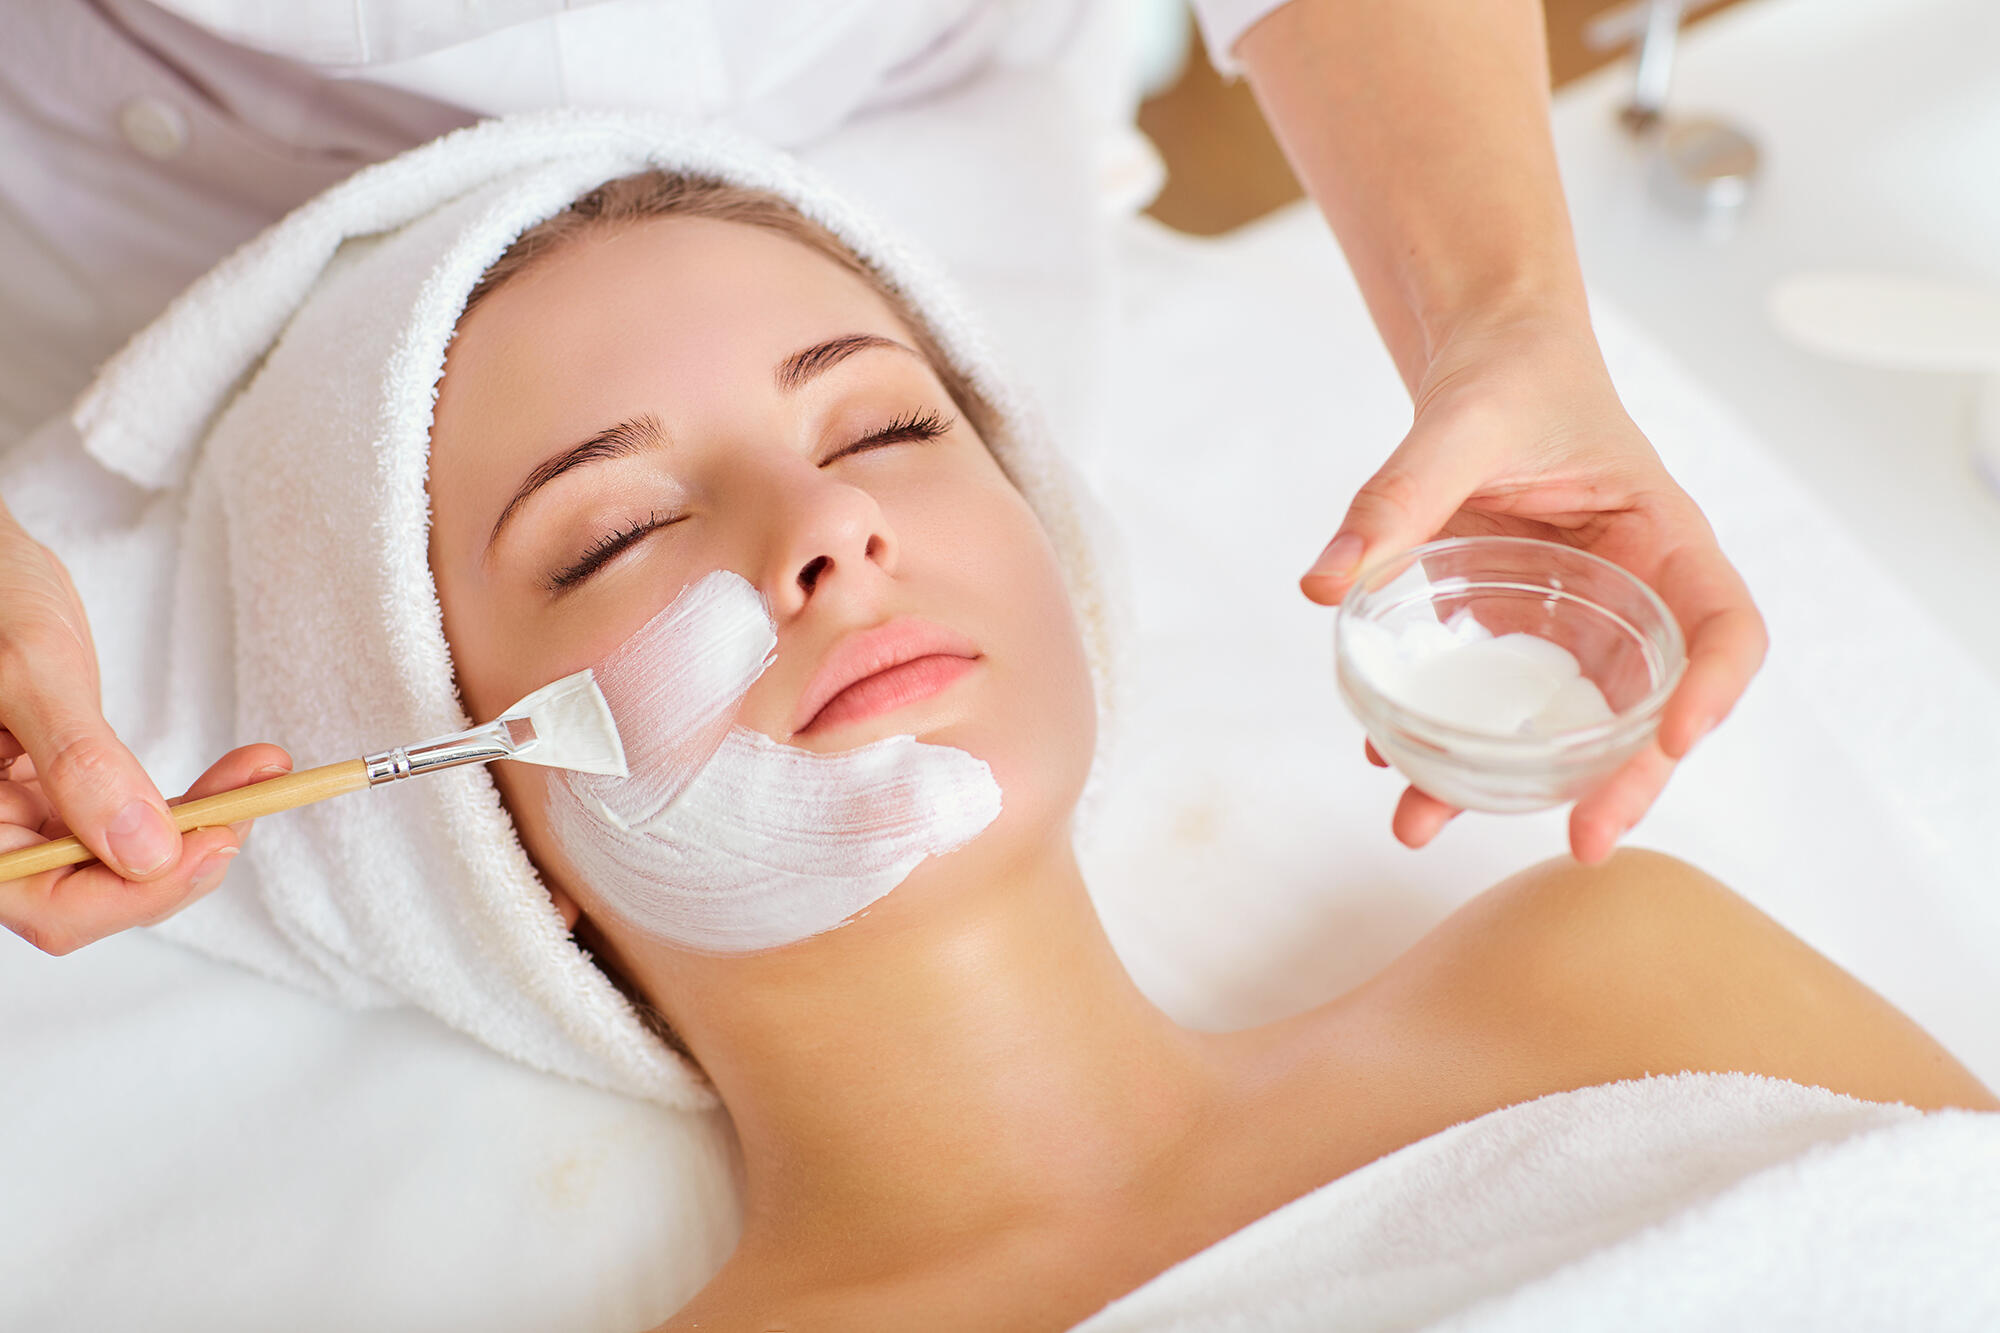 Le Spa face treatments at The Spa by Warwick Melrose